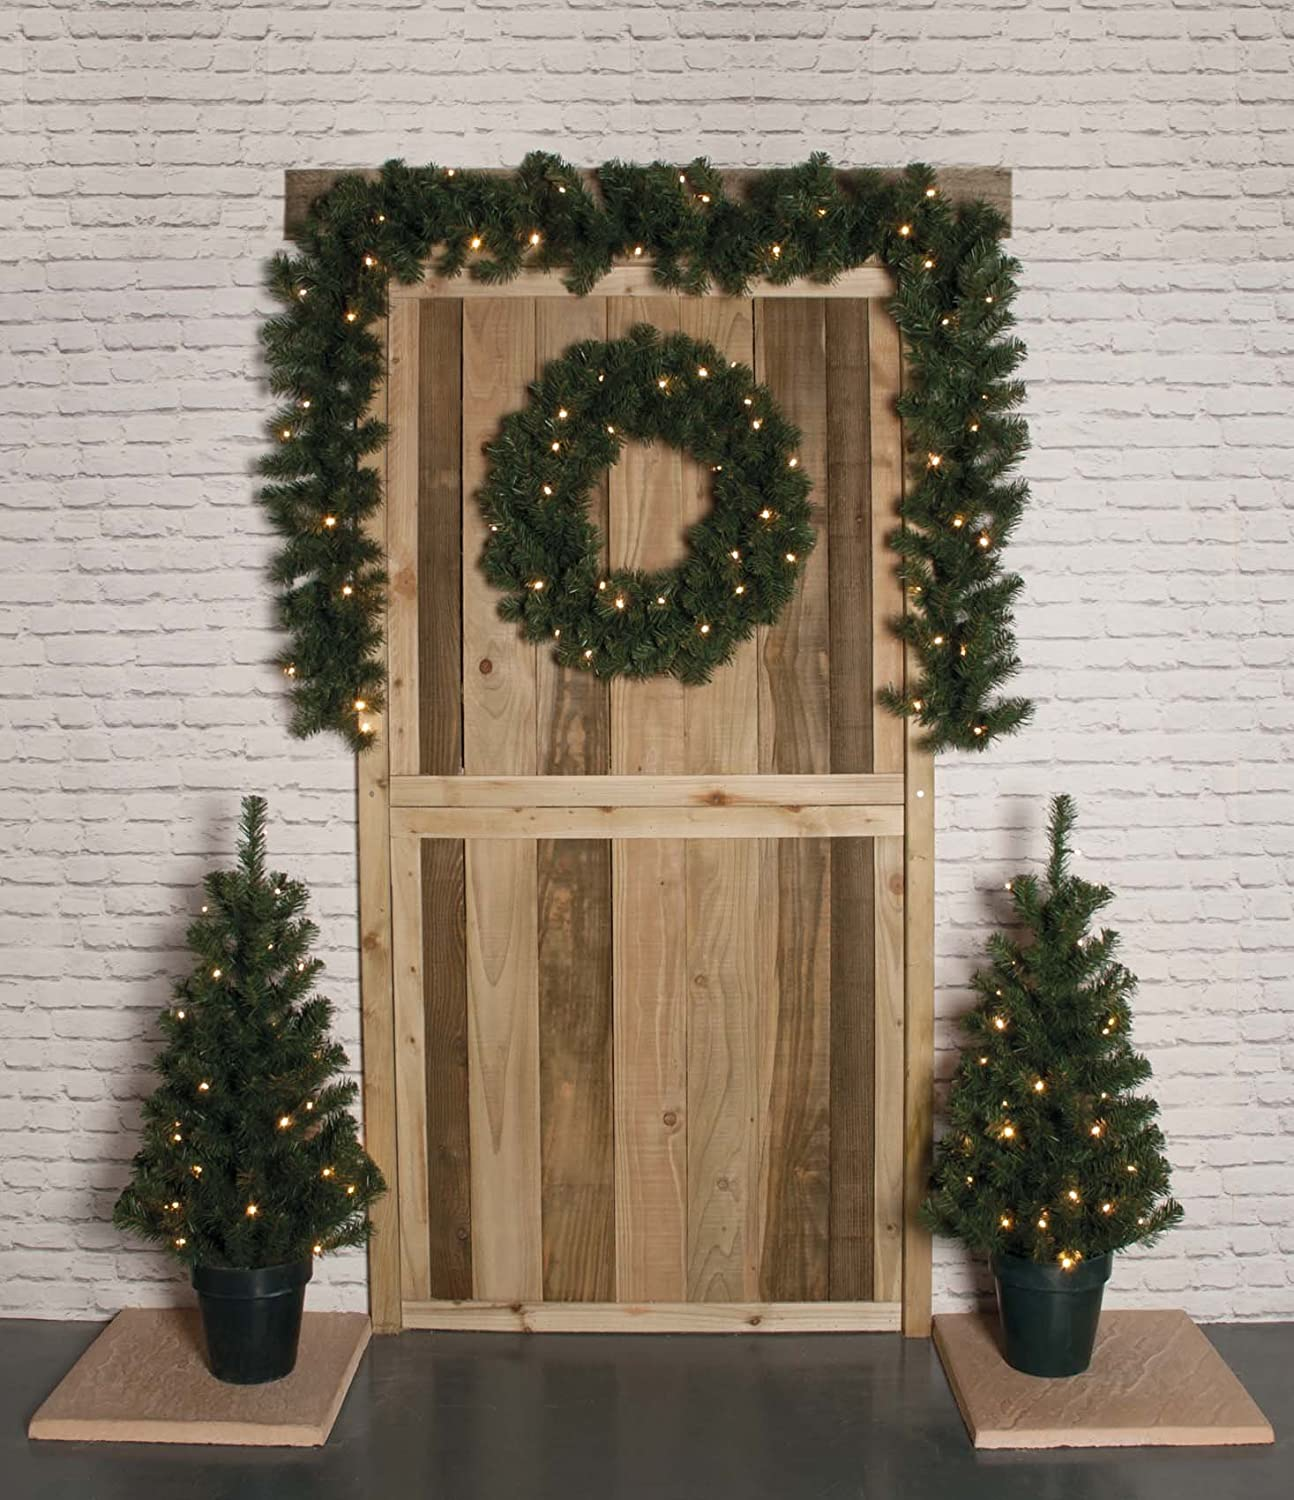 4 Piece Prelit Christmas Door Decoration Set - Consists Of 2 Trees, A Wreath And A Garland. Festive